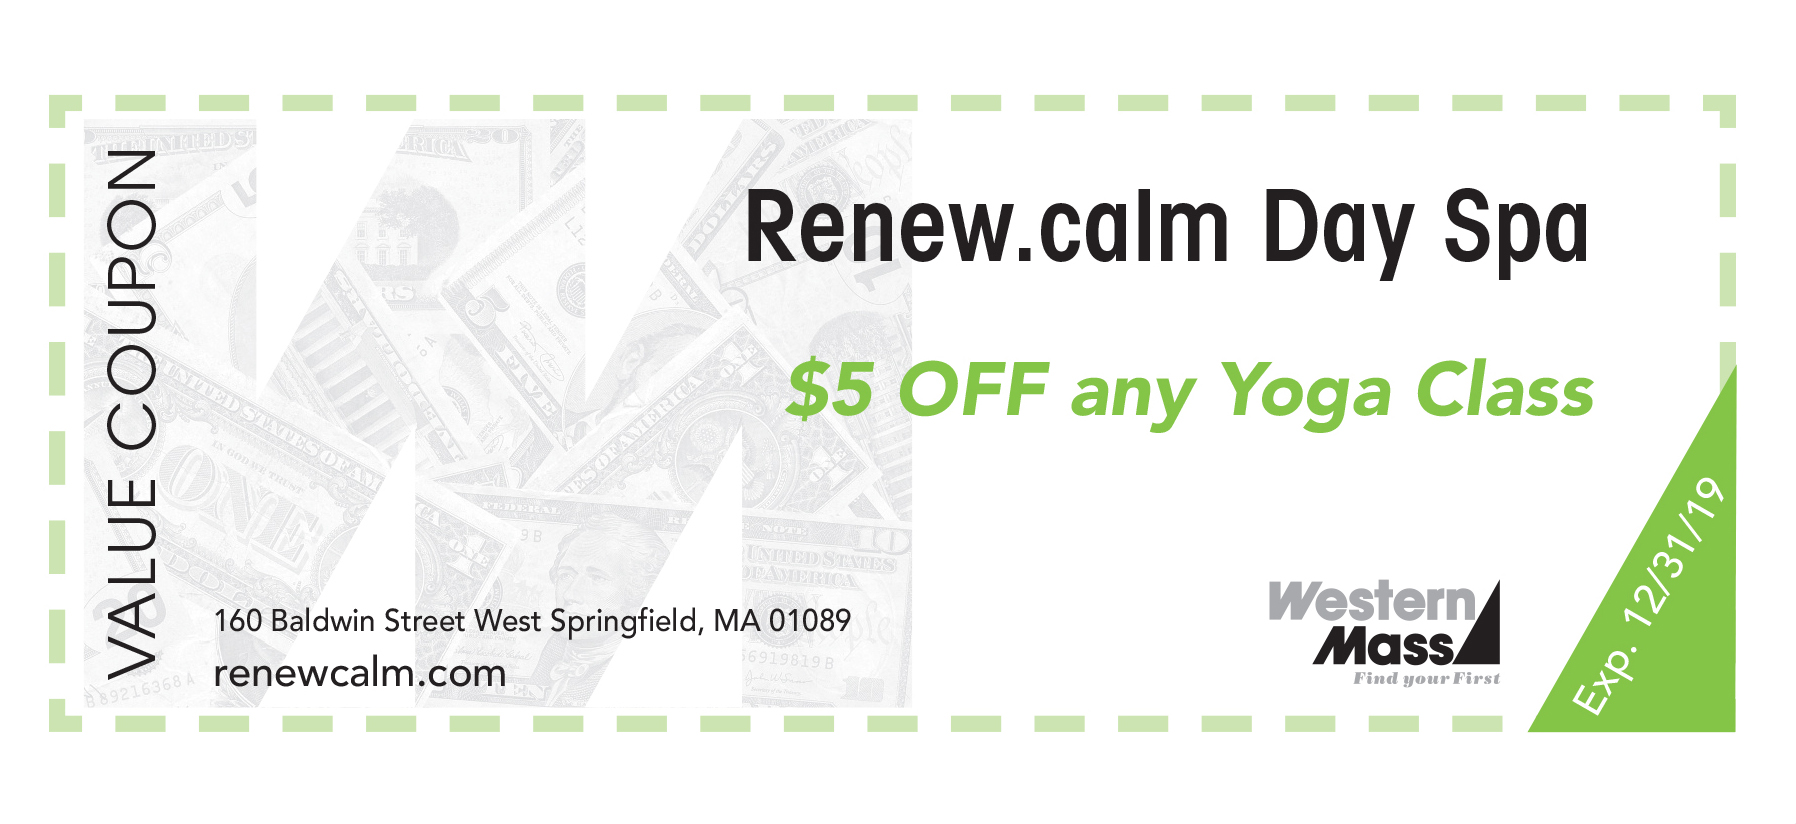 Renew.calm Day Spa